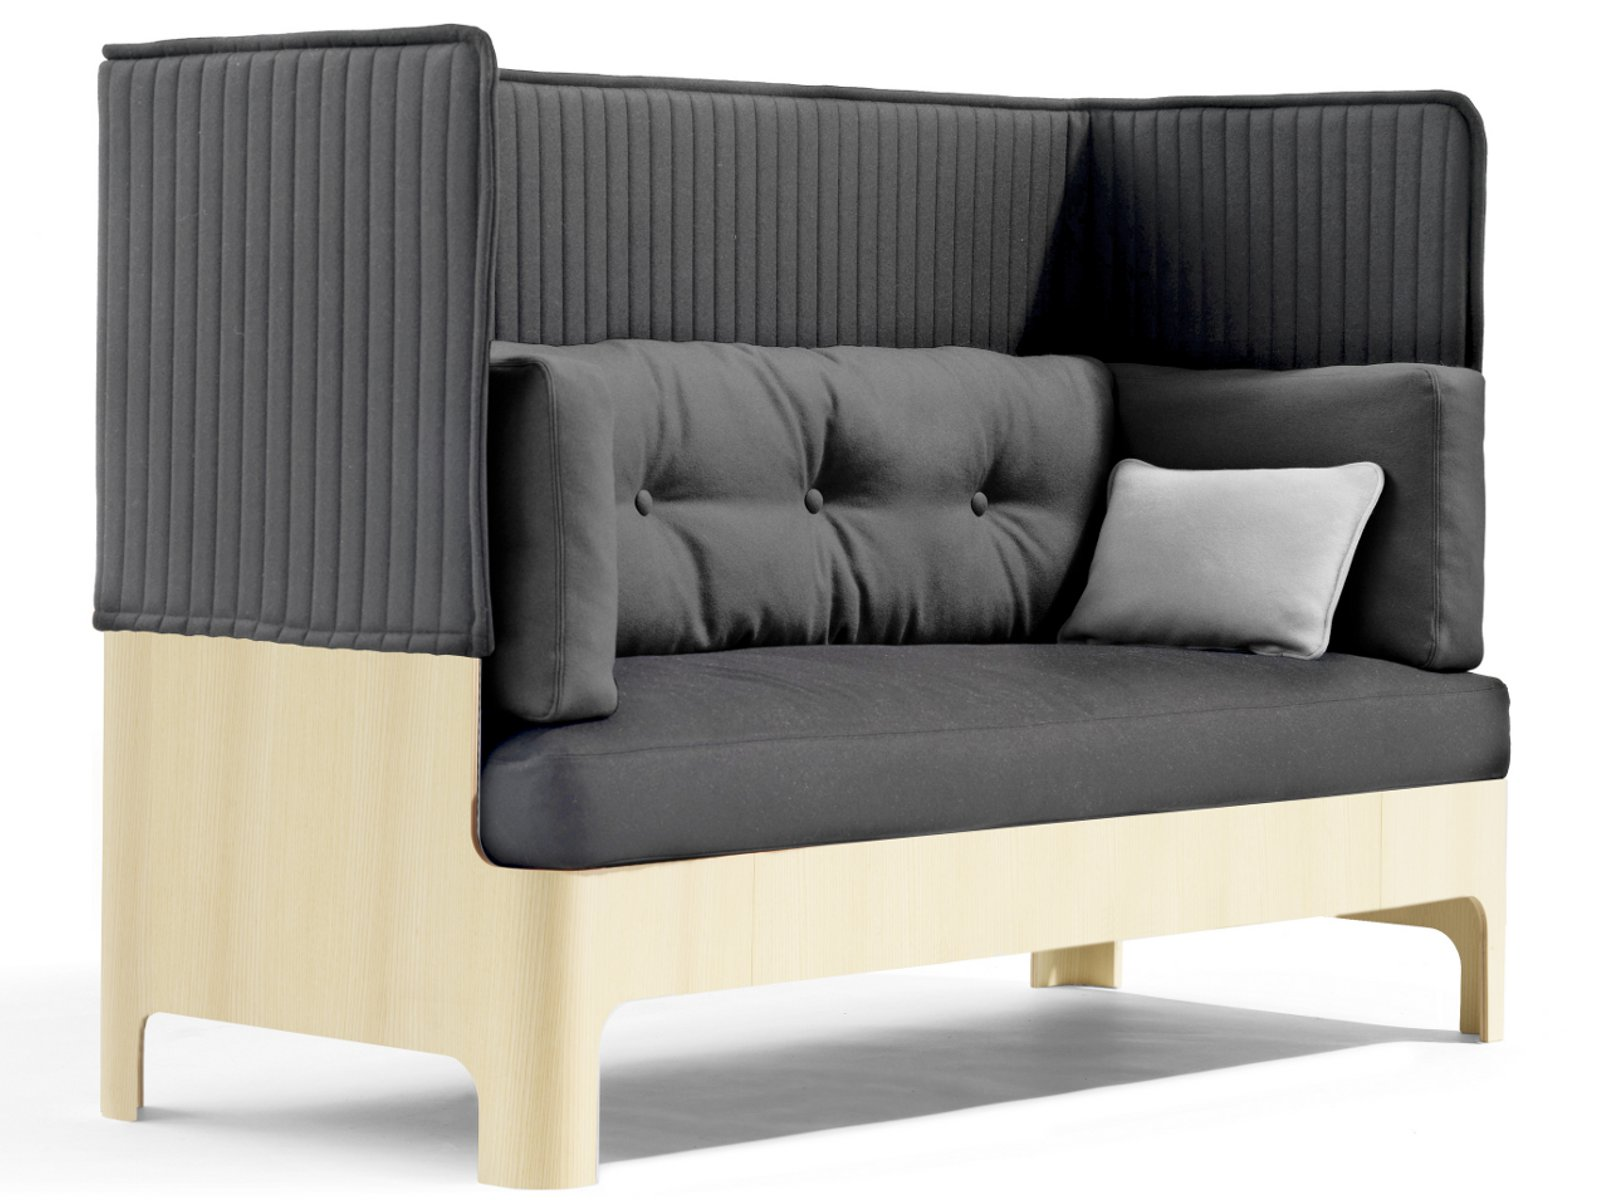 koja canap avec dossier haut by bl station design. Black Bedroom Furniture Sets. Home Design Ideas